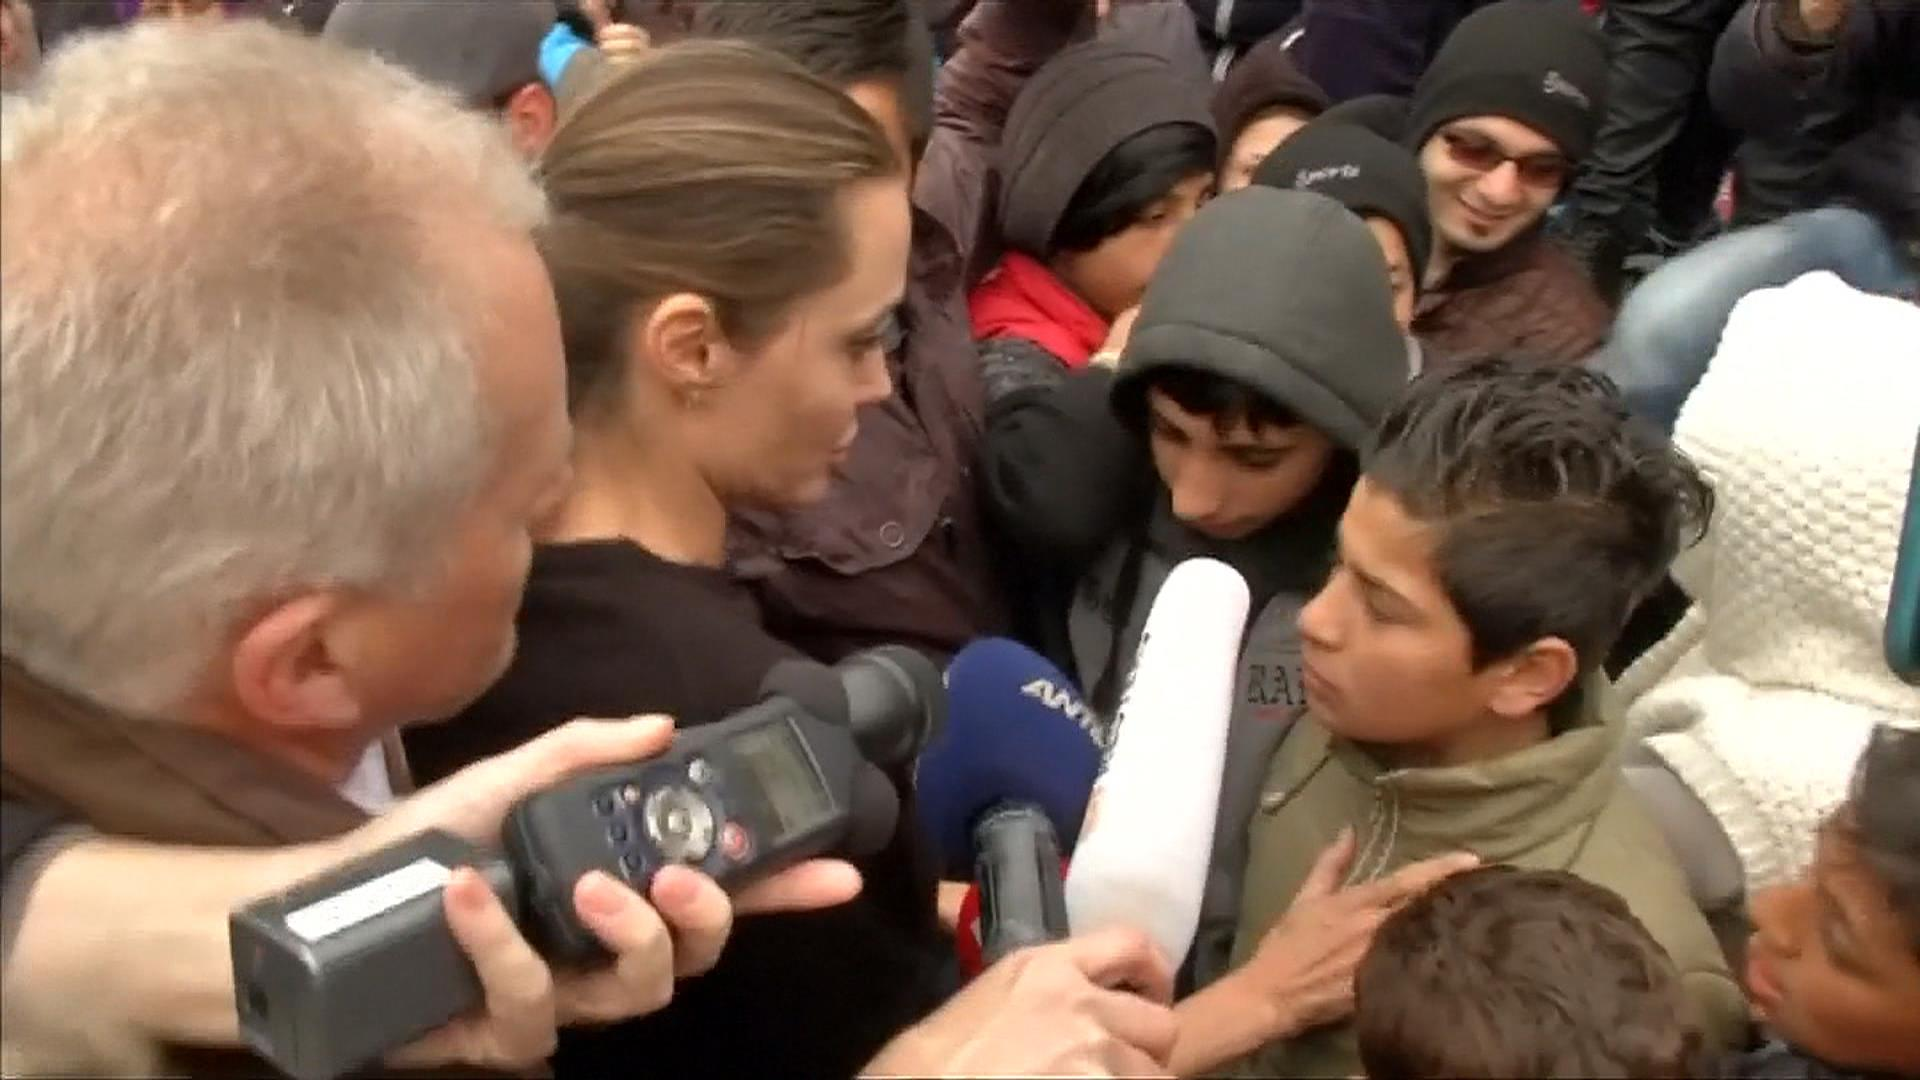 Angelina Jolie Mobbed on Visit to Meet Migrants